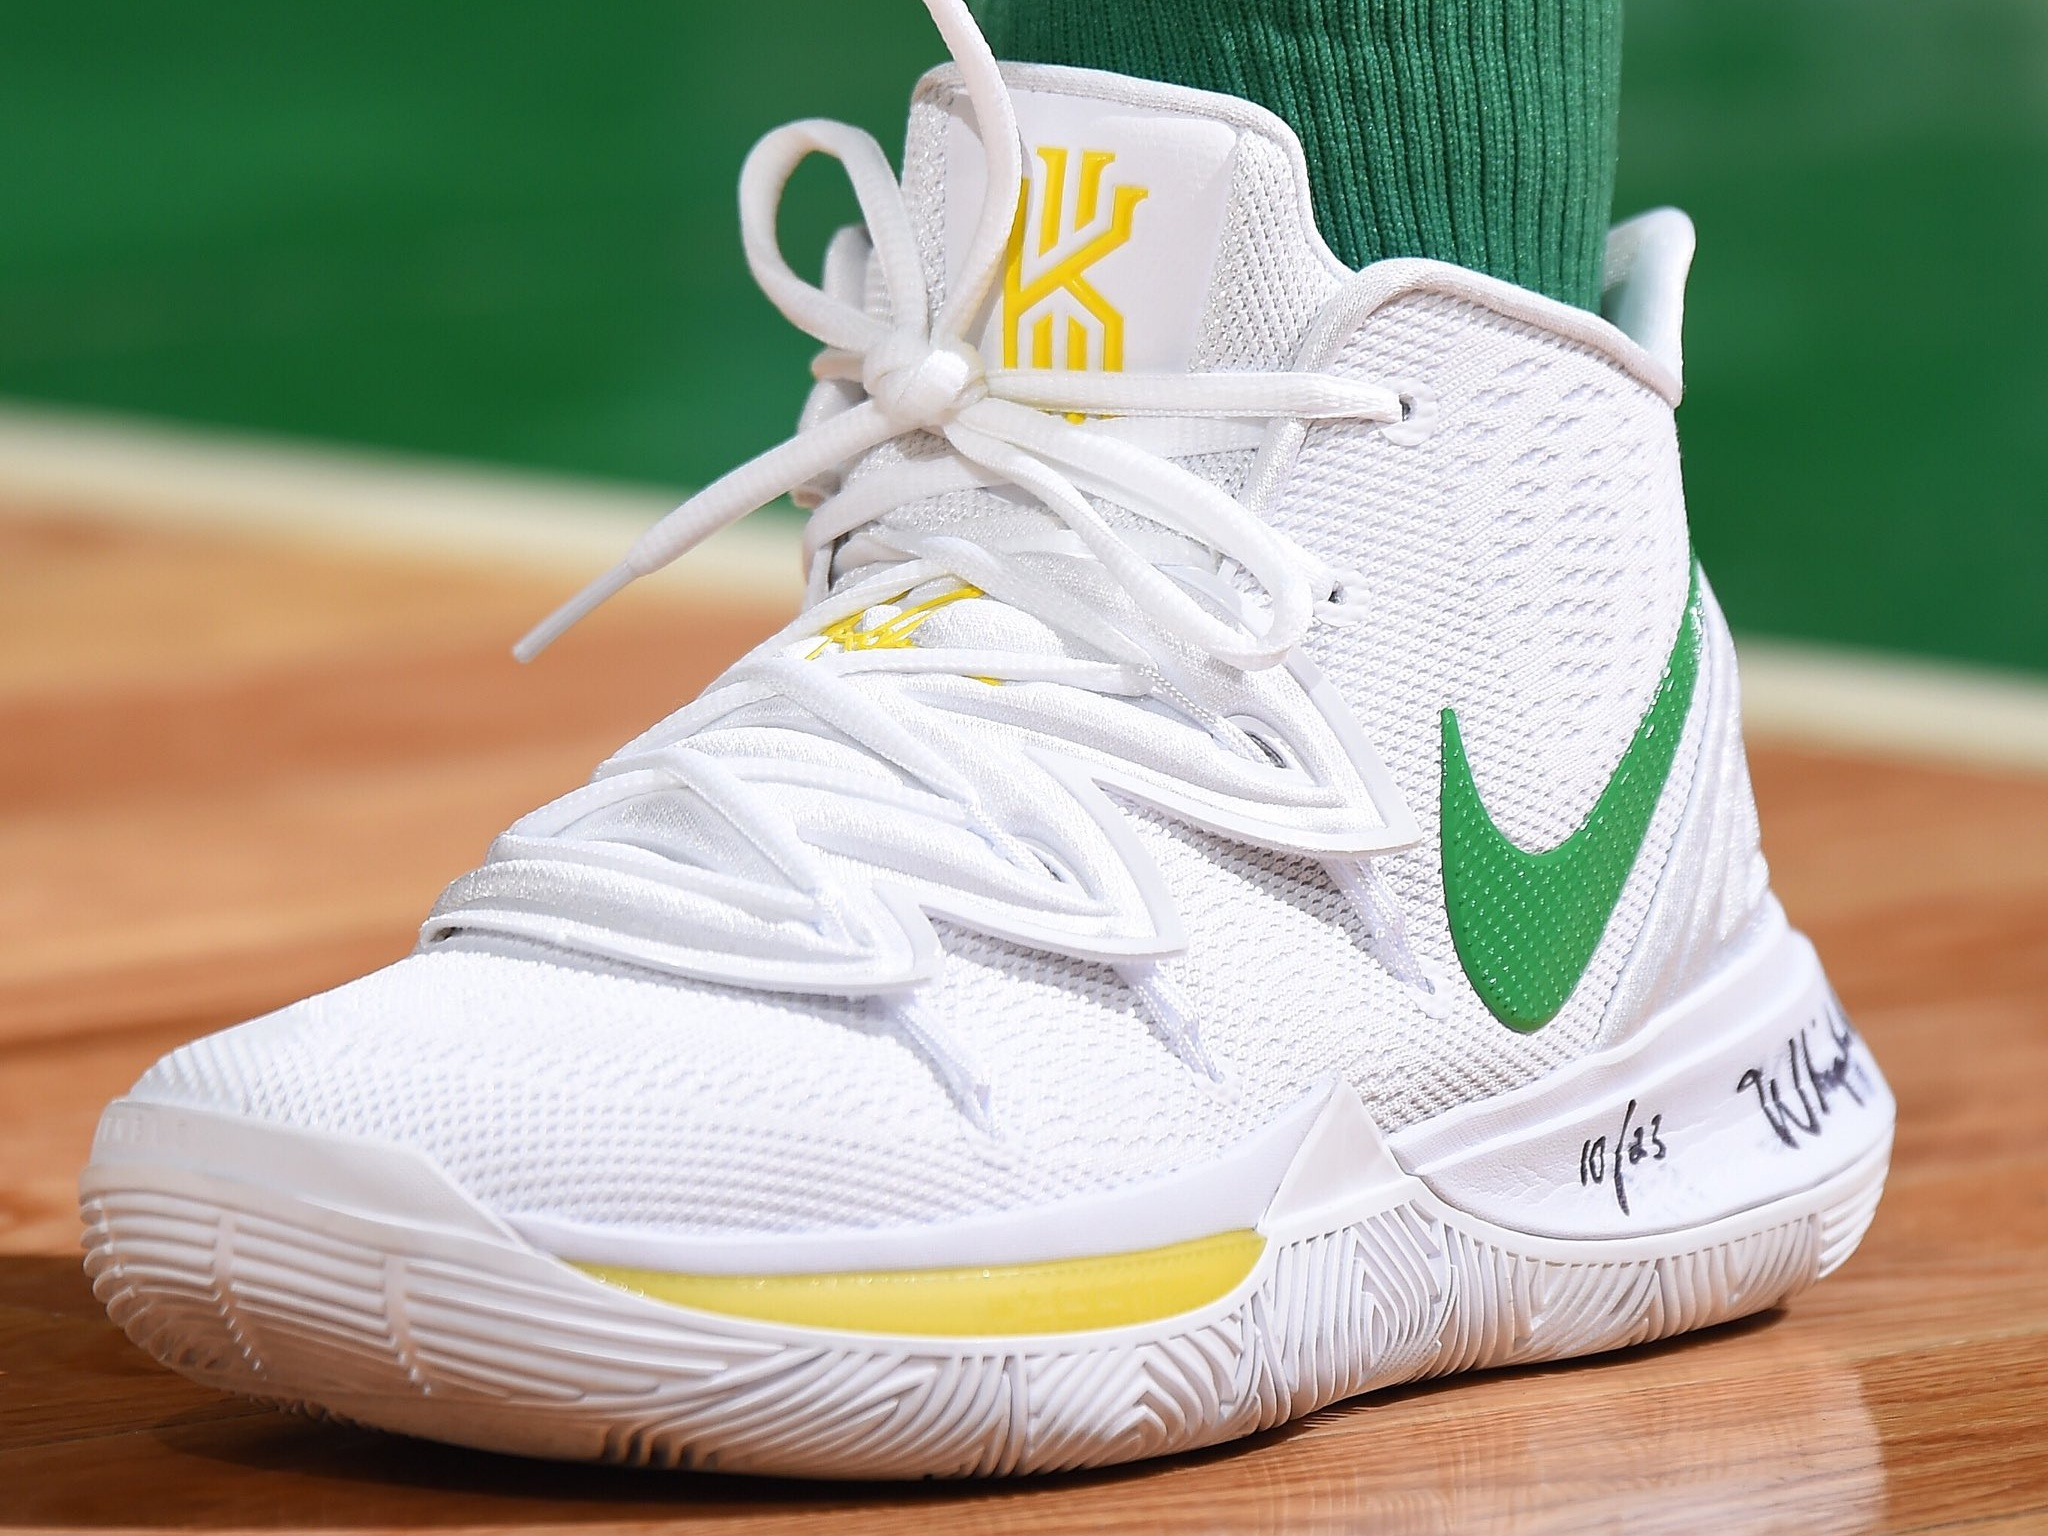 Kyrie Irving wearing his own Nike Kyrie 5 - Boston Celtics vs. Denver Nuggets | March 18, 201930 Points4 Assists5 Rebounds4 Steals10-23 Shooting